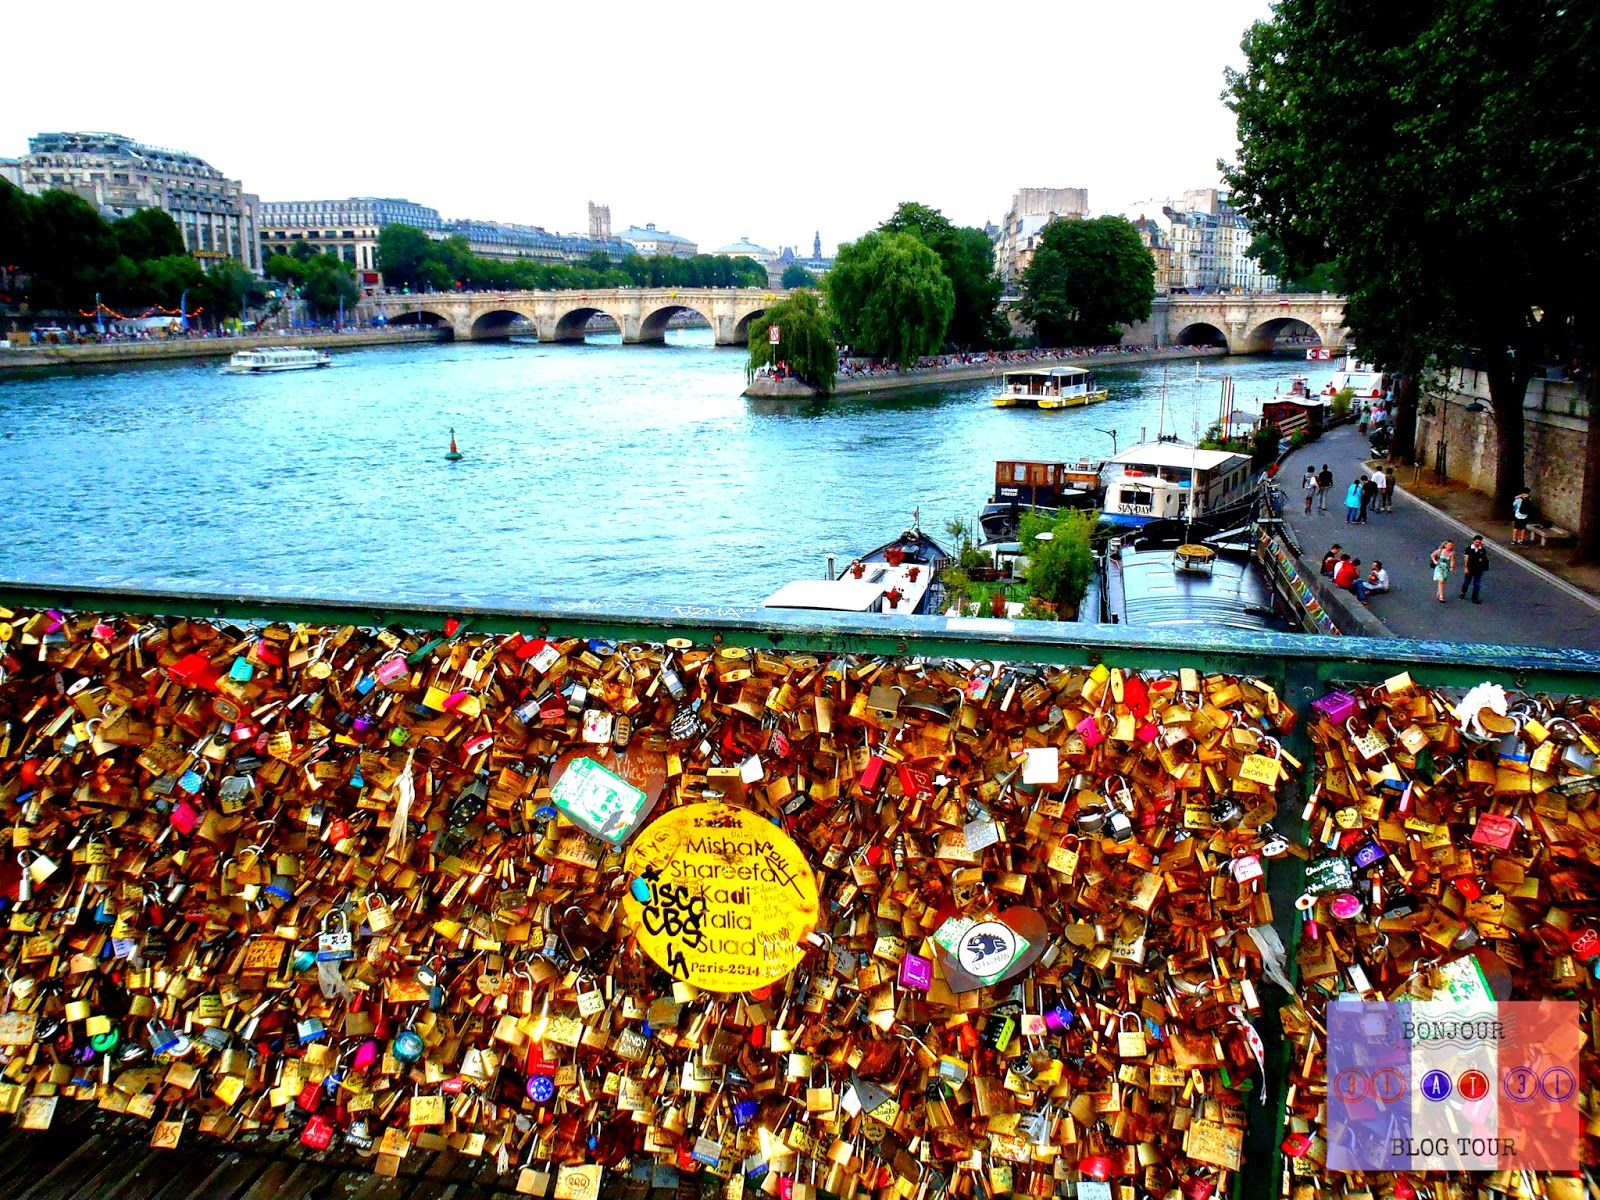 Pont des Arts Love Lock Bridge in Paris, France Overlooking the Seine River.